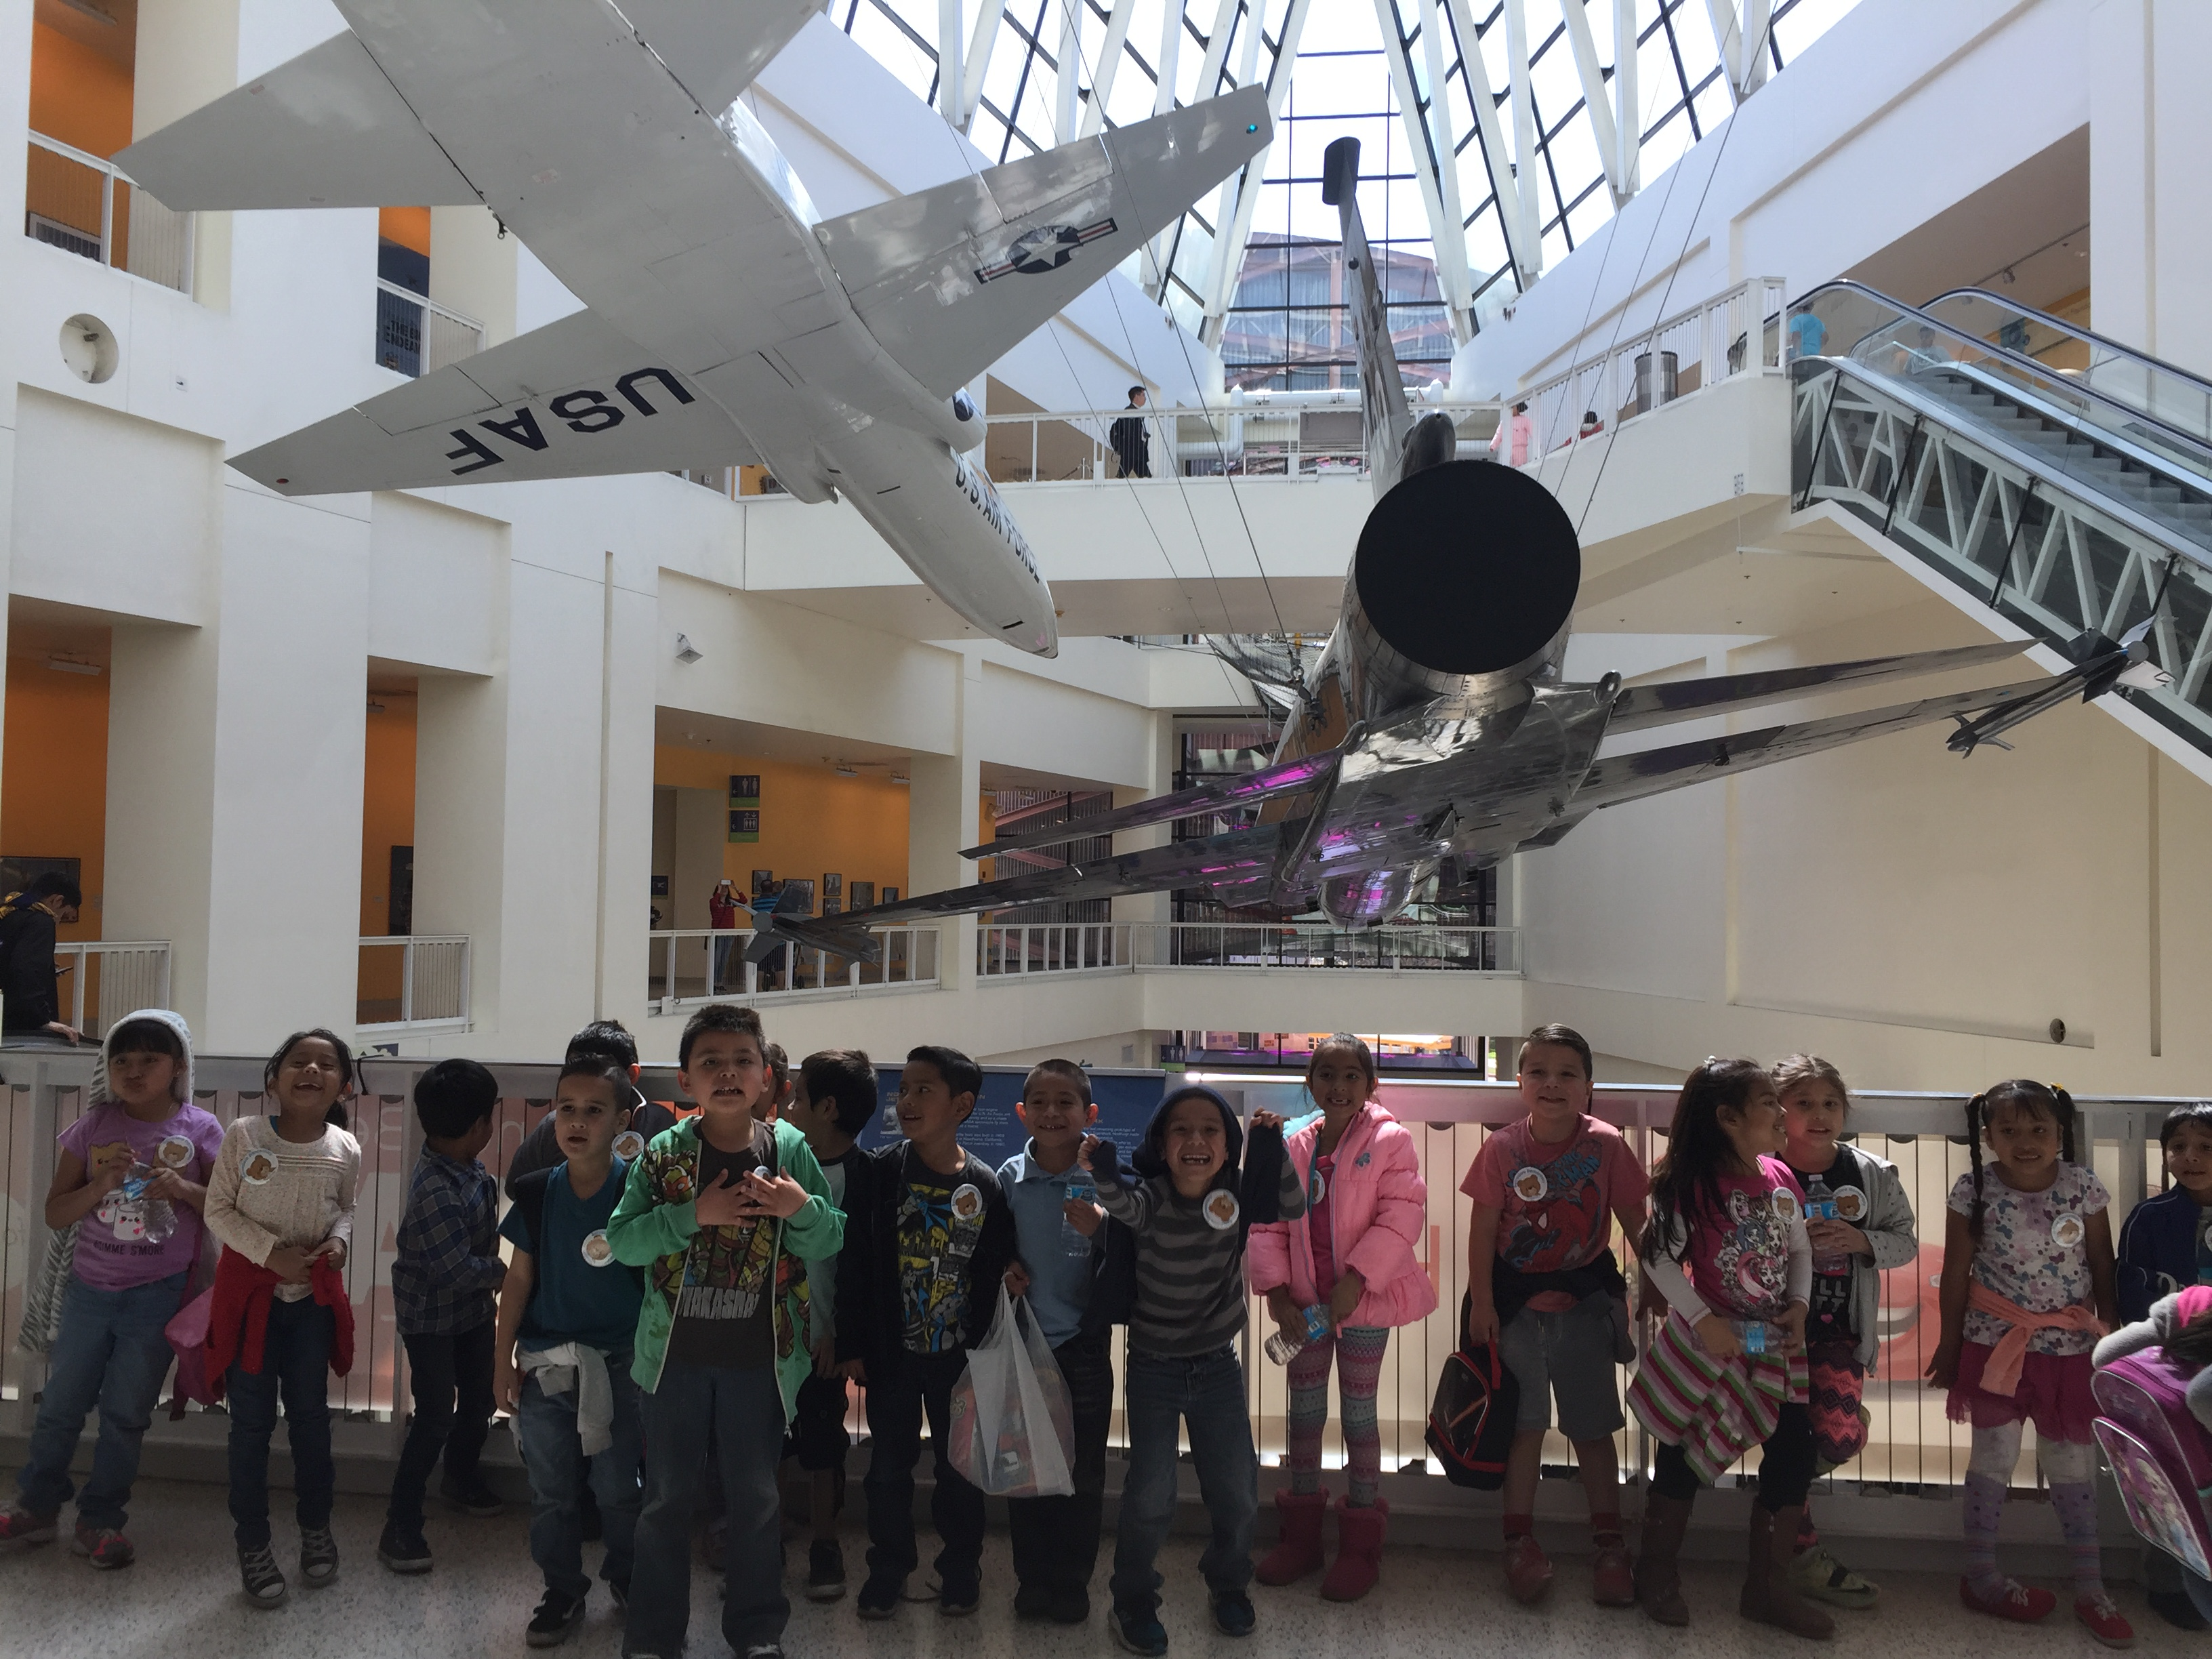 Our Fieldtrip to the Science Center